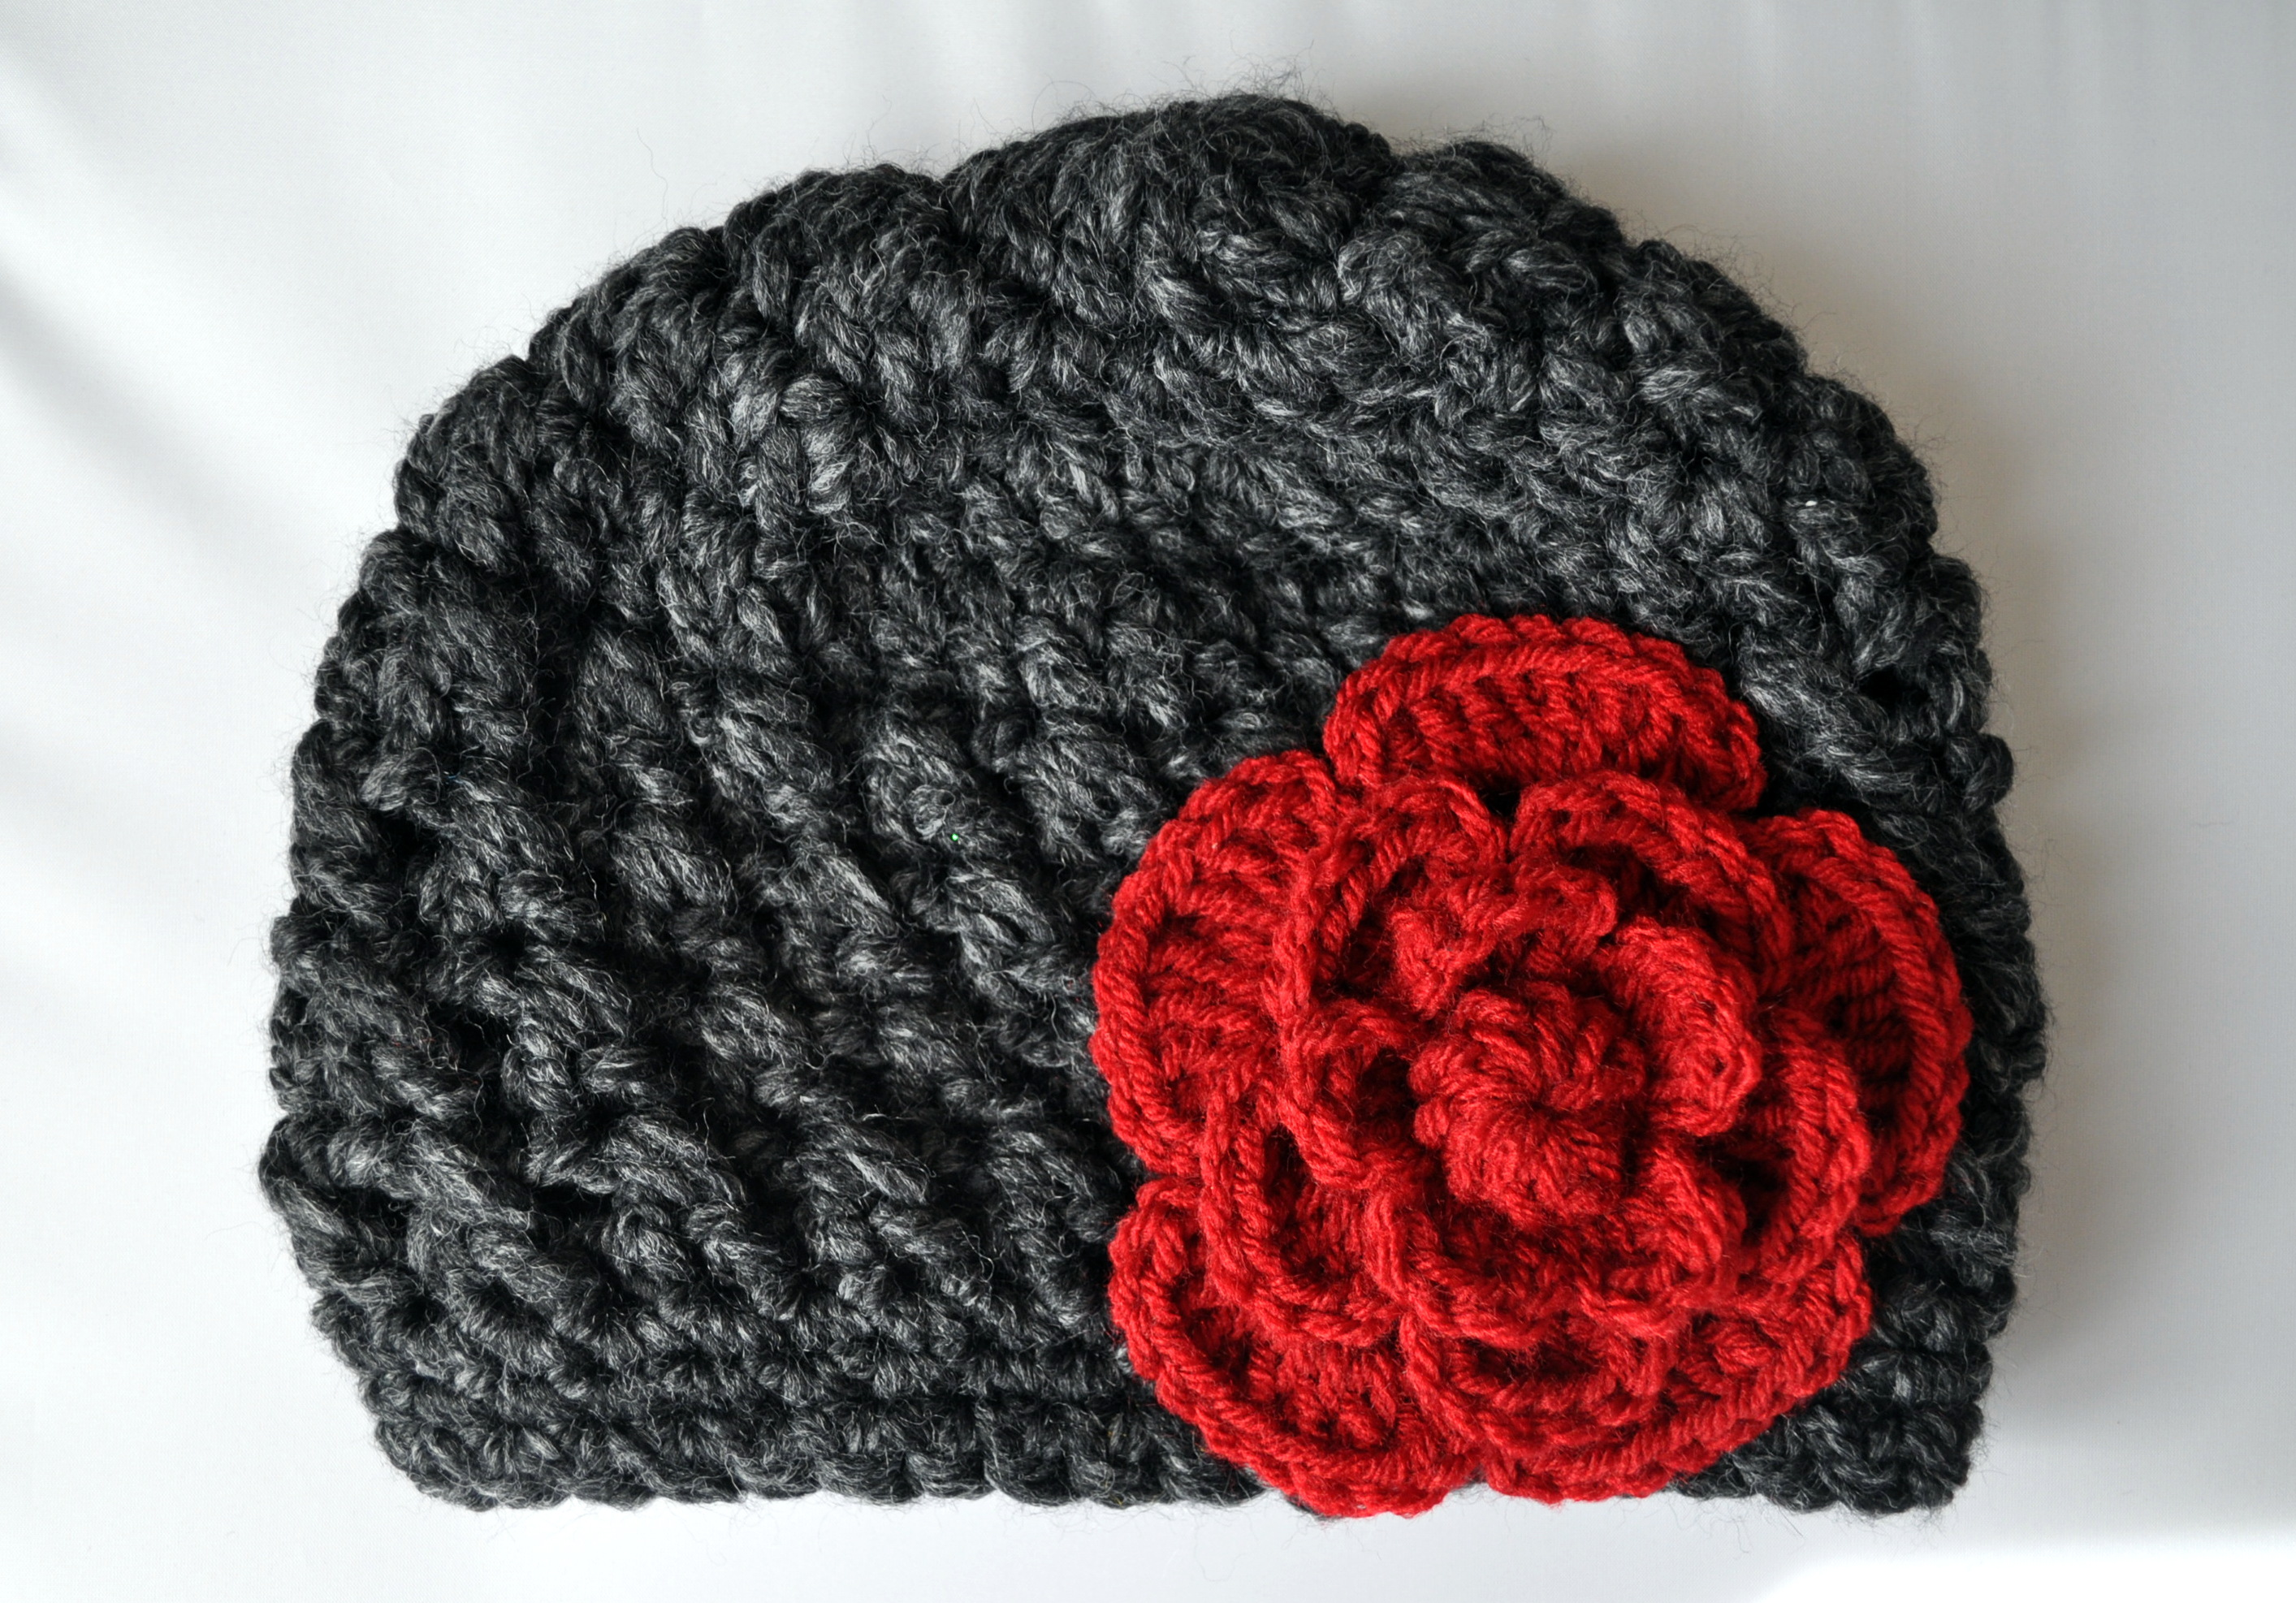 Crochet Yarn : Crochet Chunky Flowered Cloche Pattern Classy Crochet